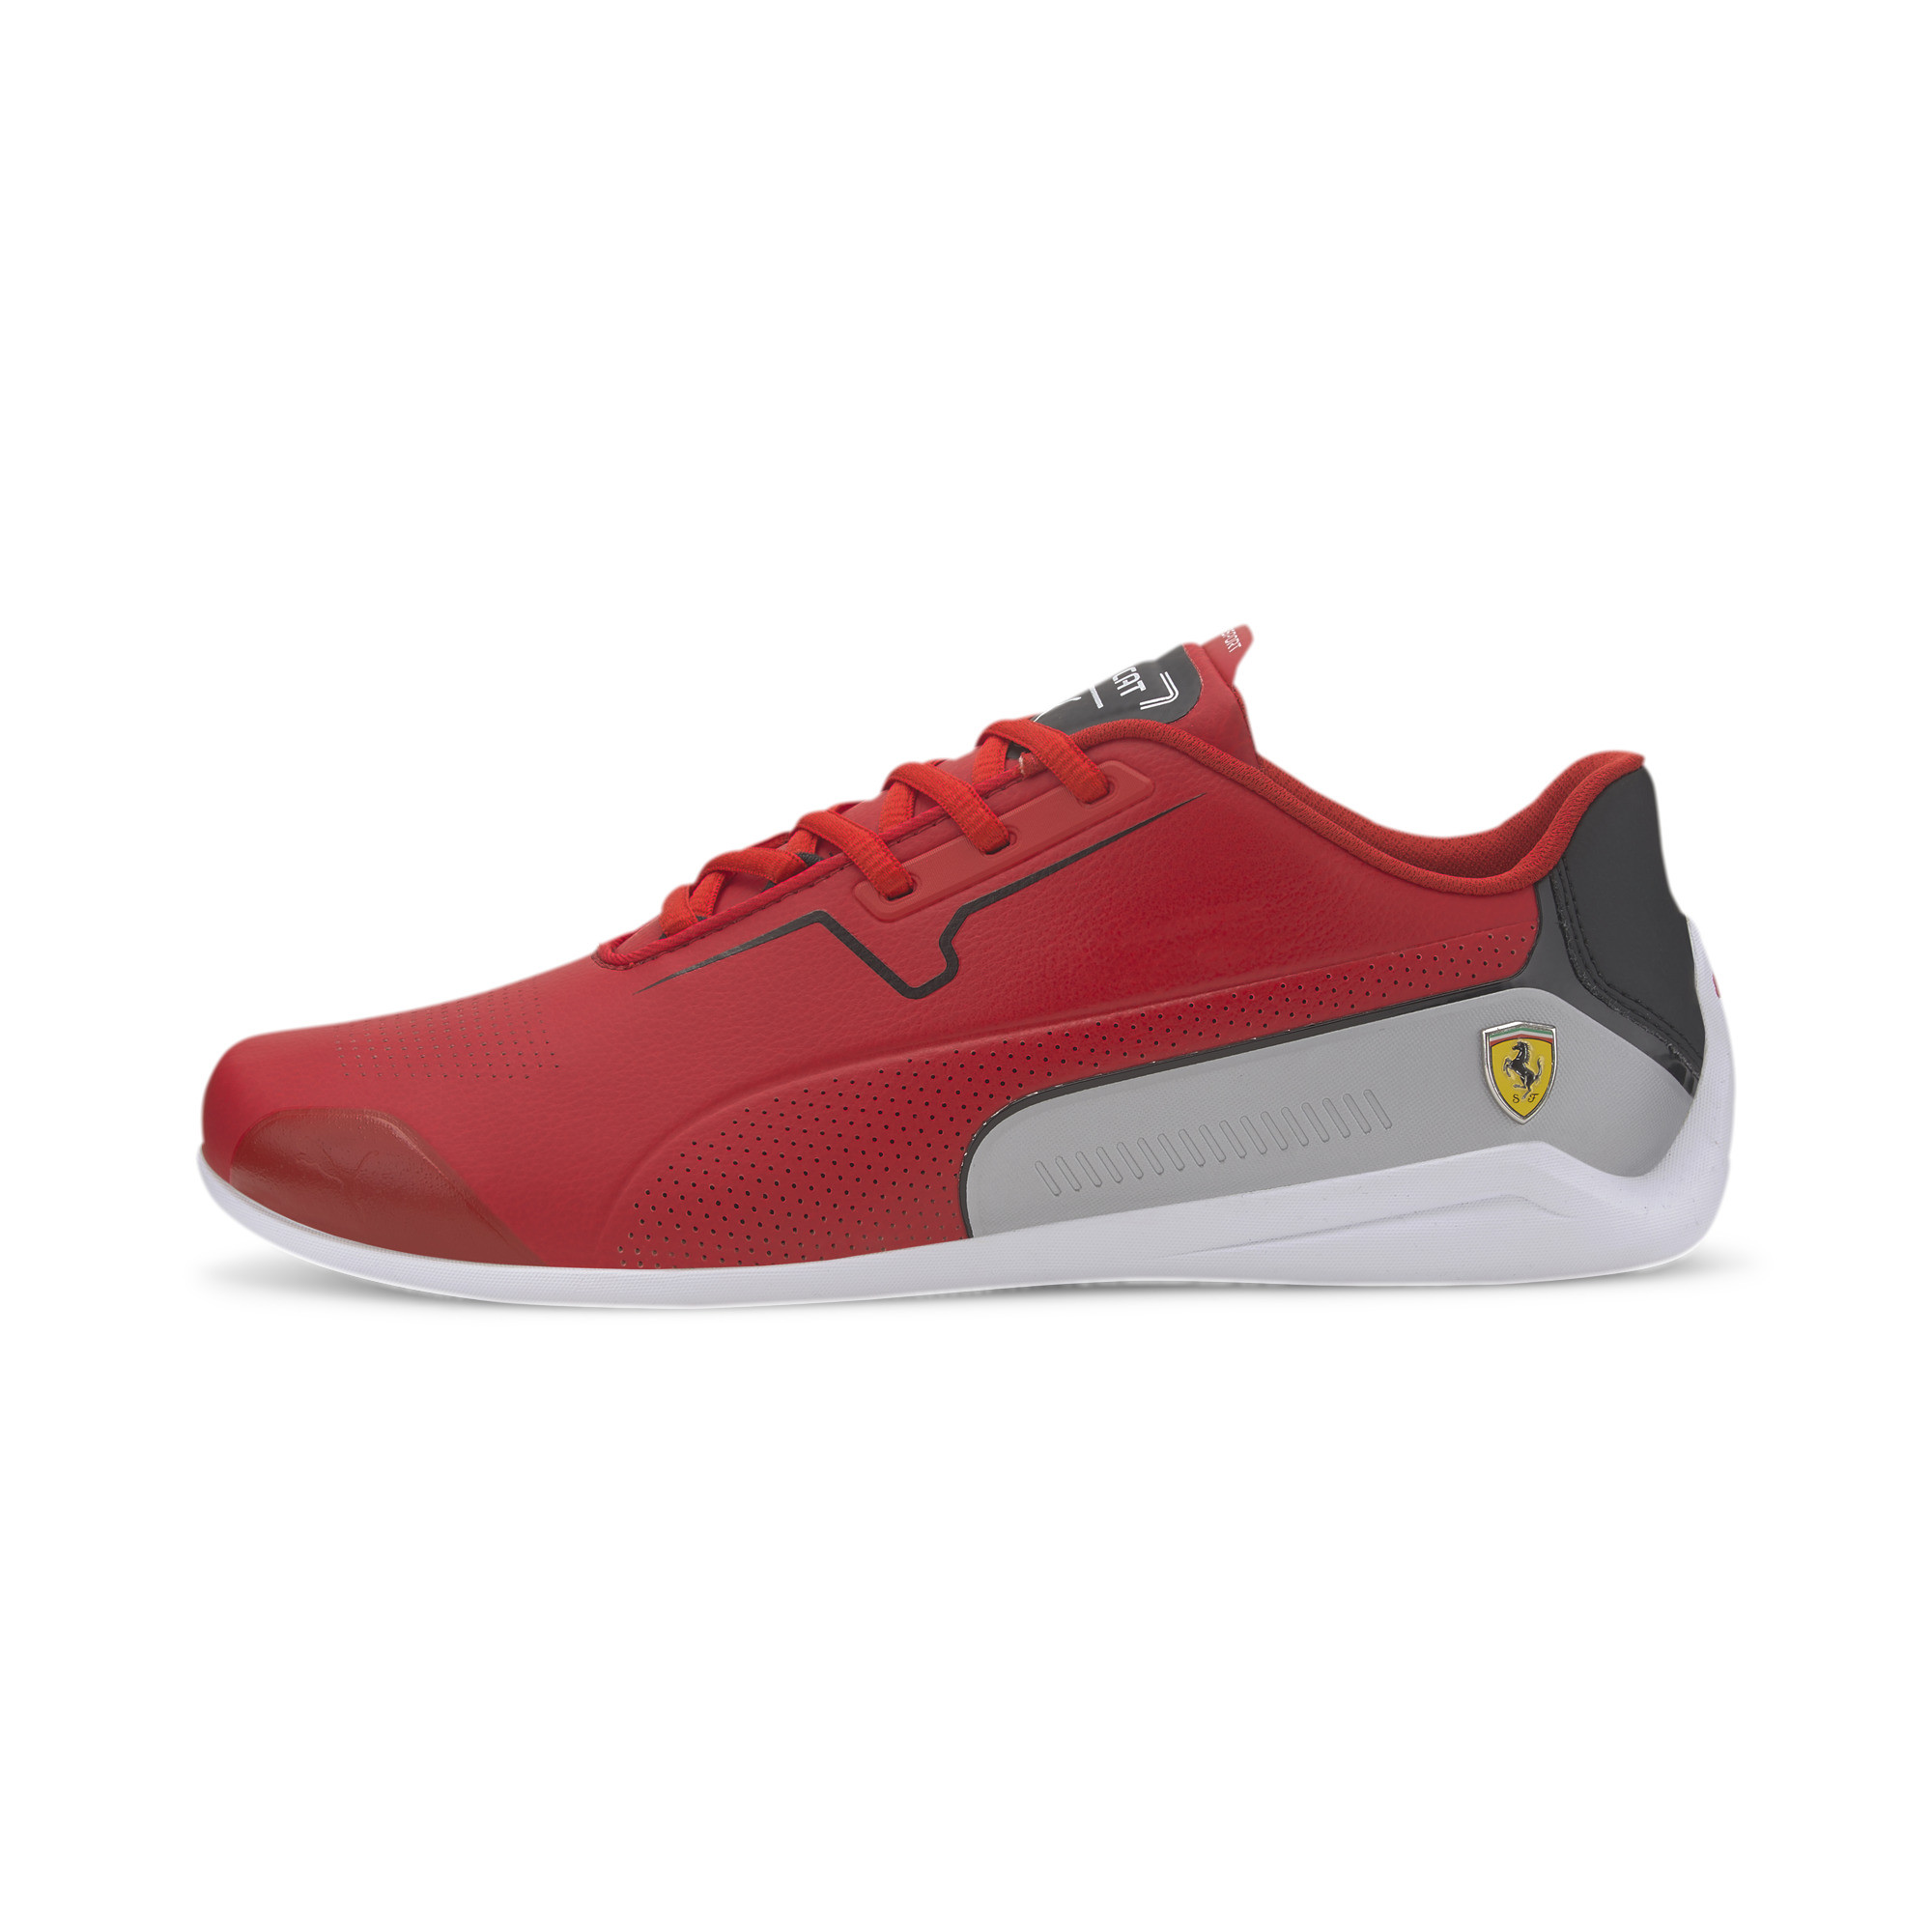 PUMA-Men-039-s-Scuderia-Ferrari-Drift-Cat-8-Motorsport-Shoes thumbnail 4